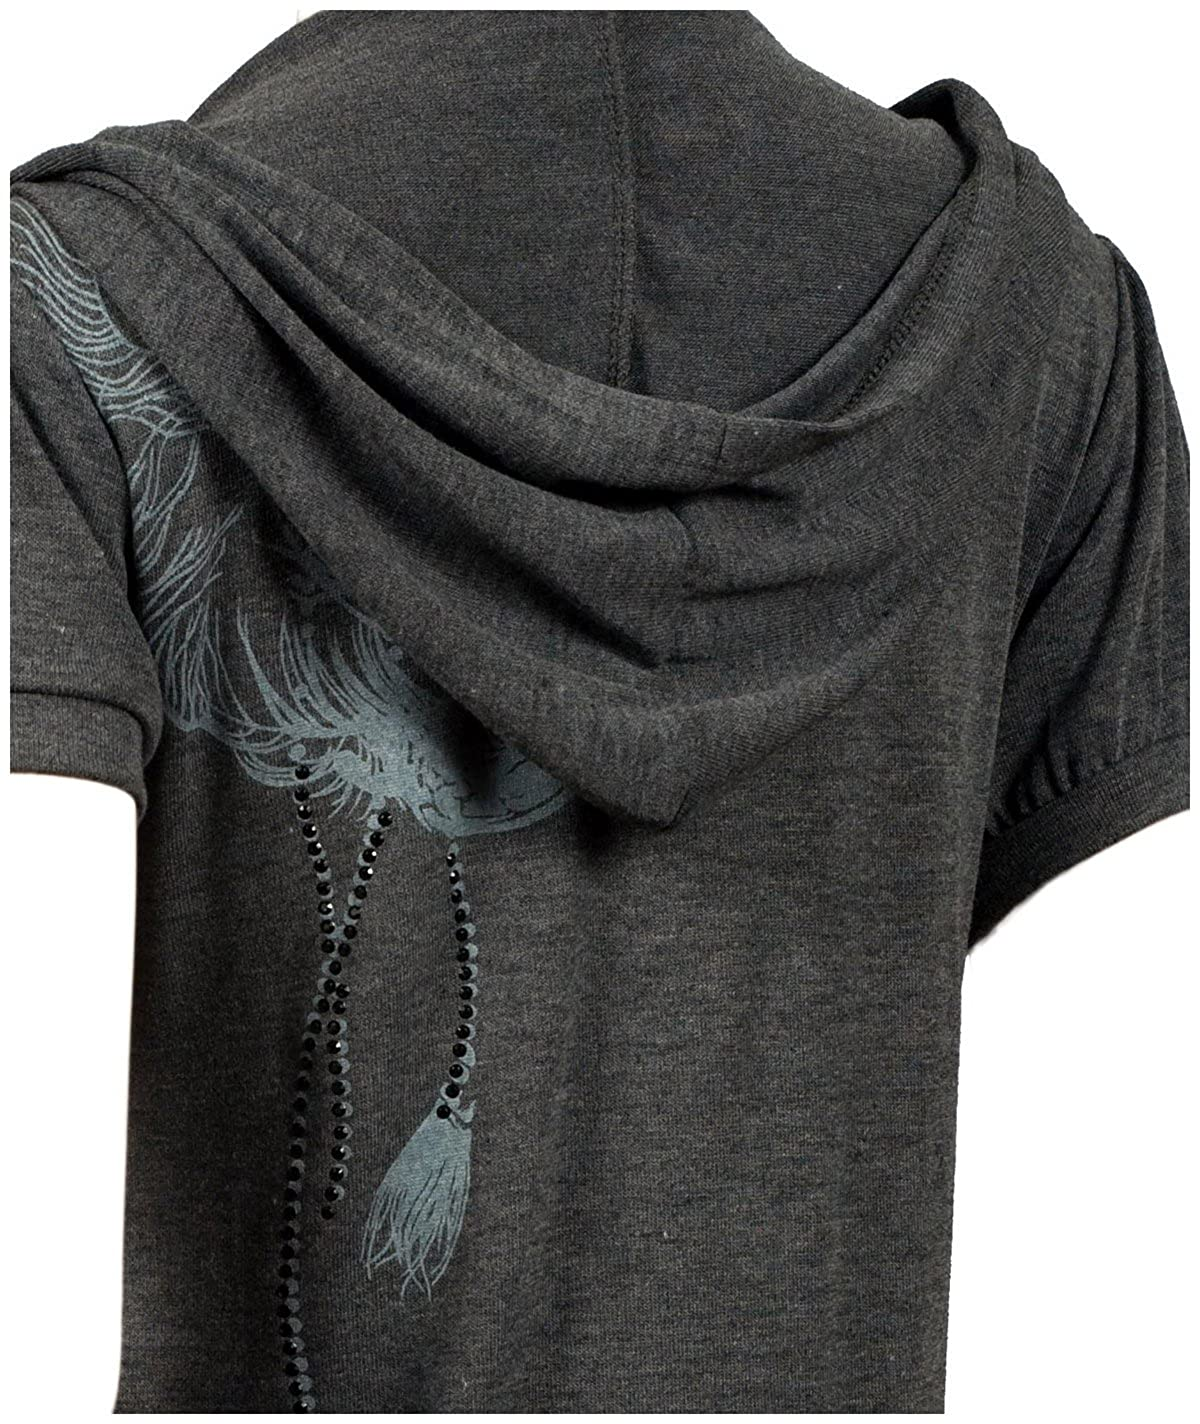 f50e7ff4b51 eVogues Women s Low Cut v-Neck Hoodie top Made in USA at Amazon Women s  Clothing store  Fashion Hoodies